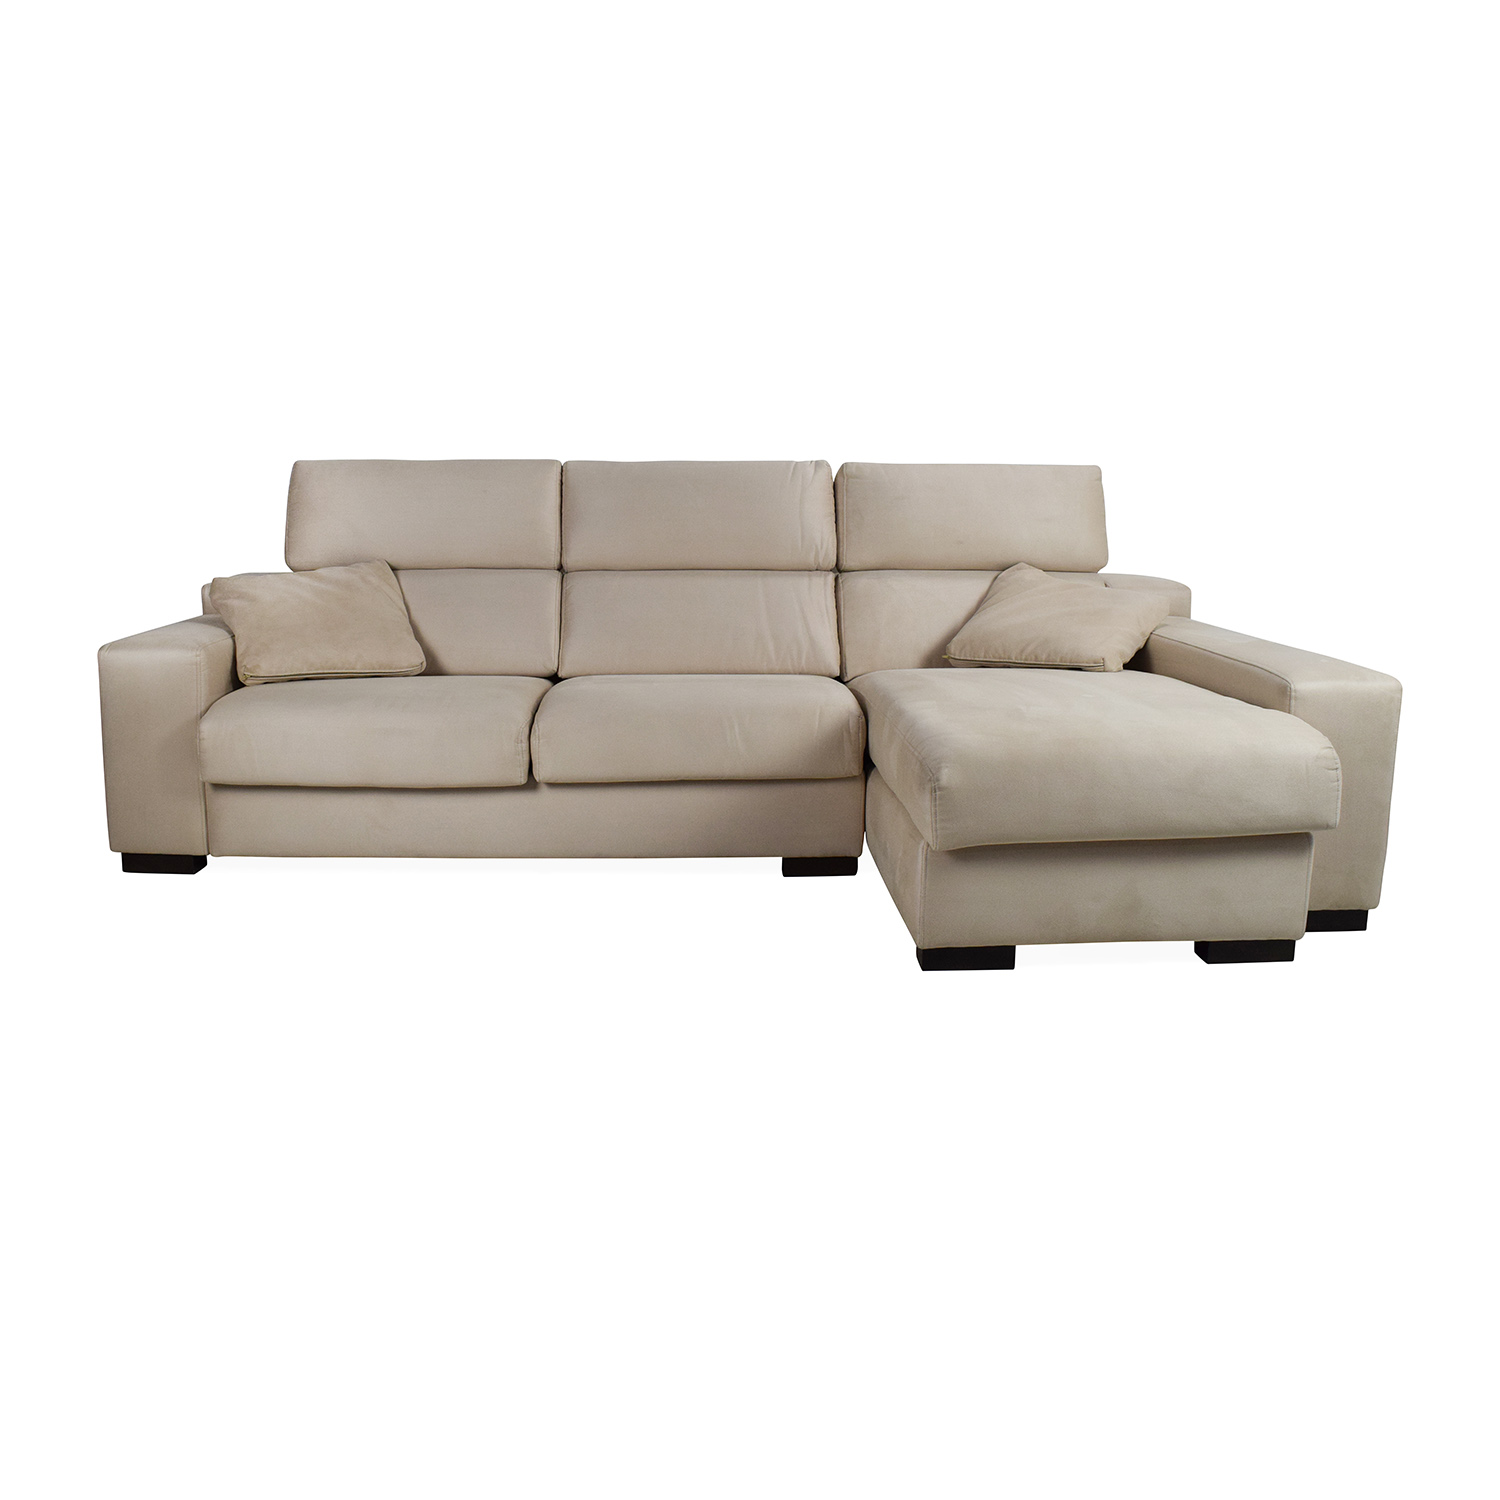 Remarkable 80 Off Fama Fama Lotus Sofa With Chaise Sofas Gmtry Best Dining Table And Chair Ideas Images Gmtryco